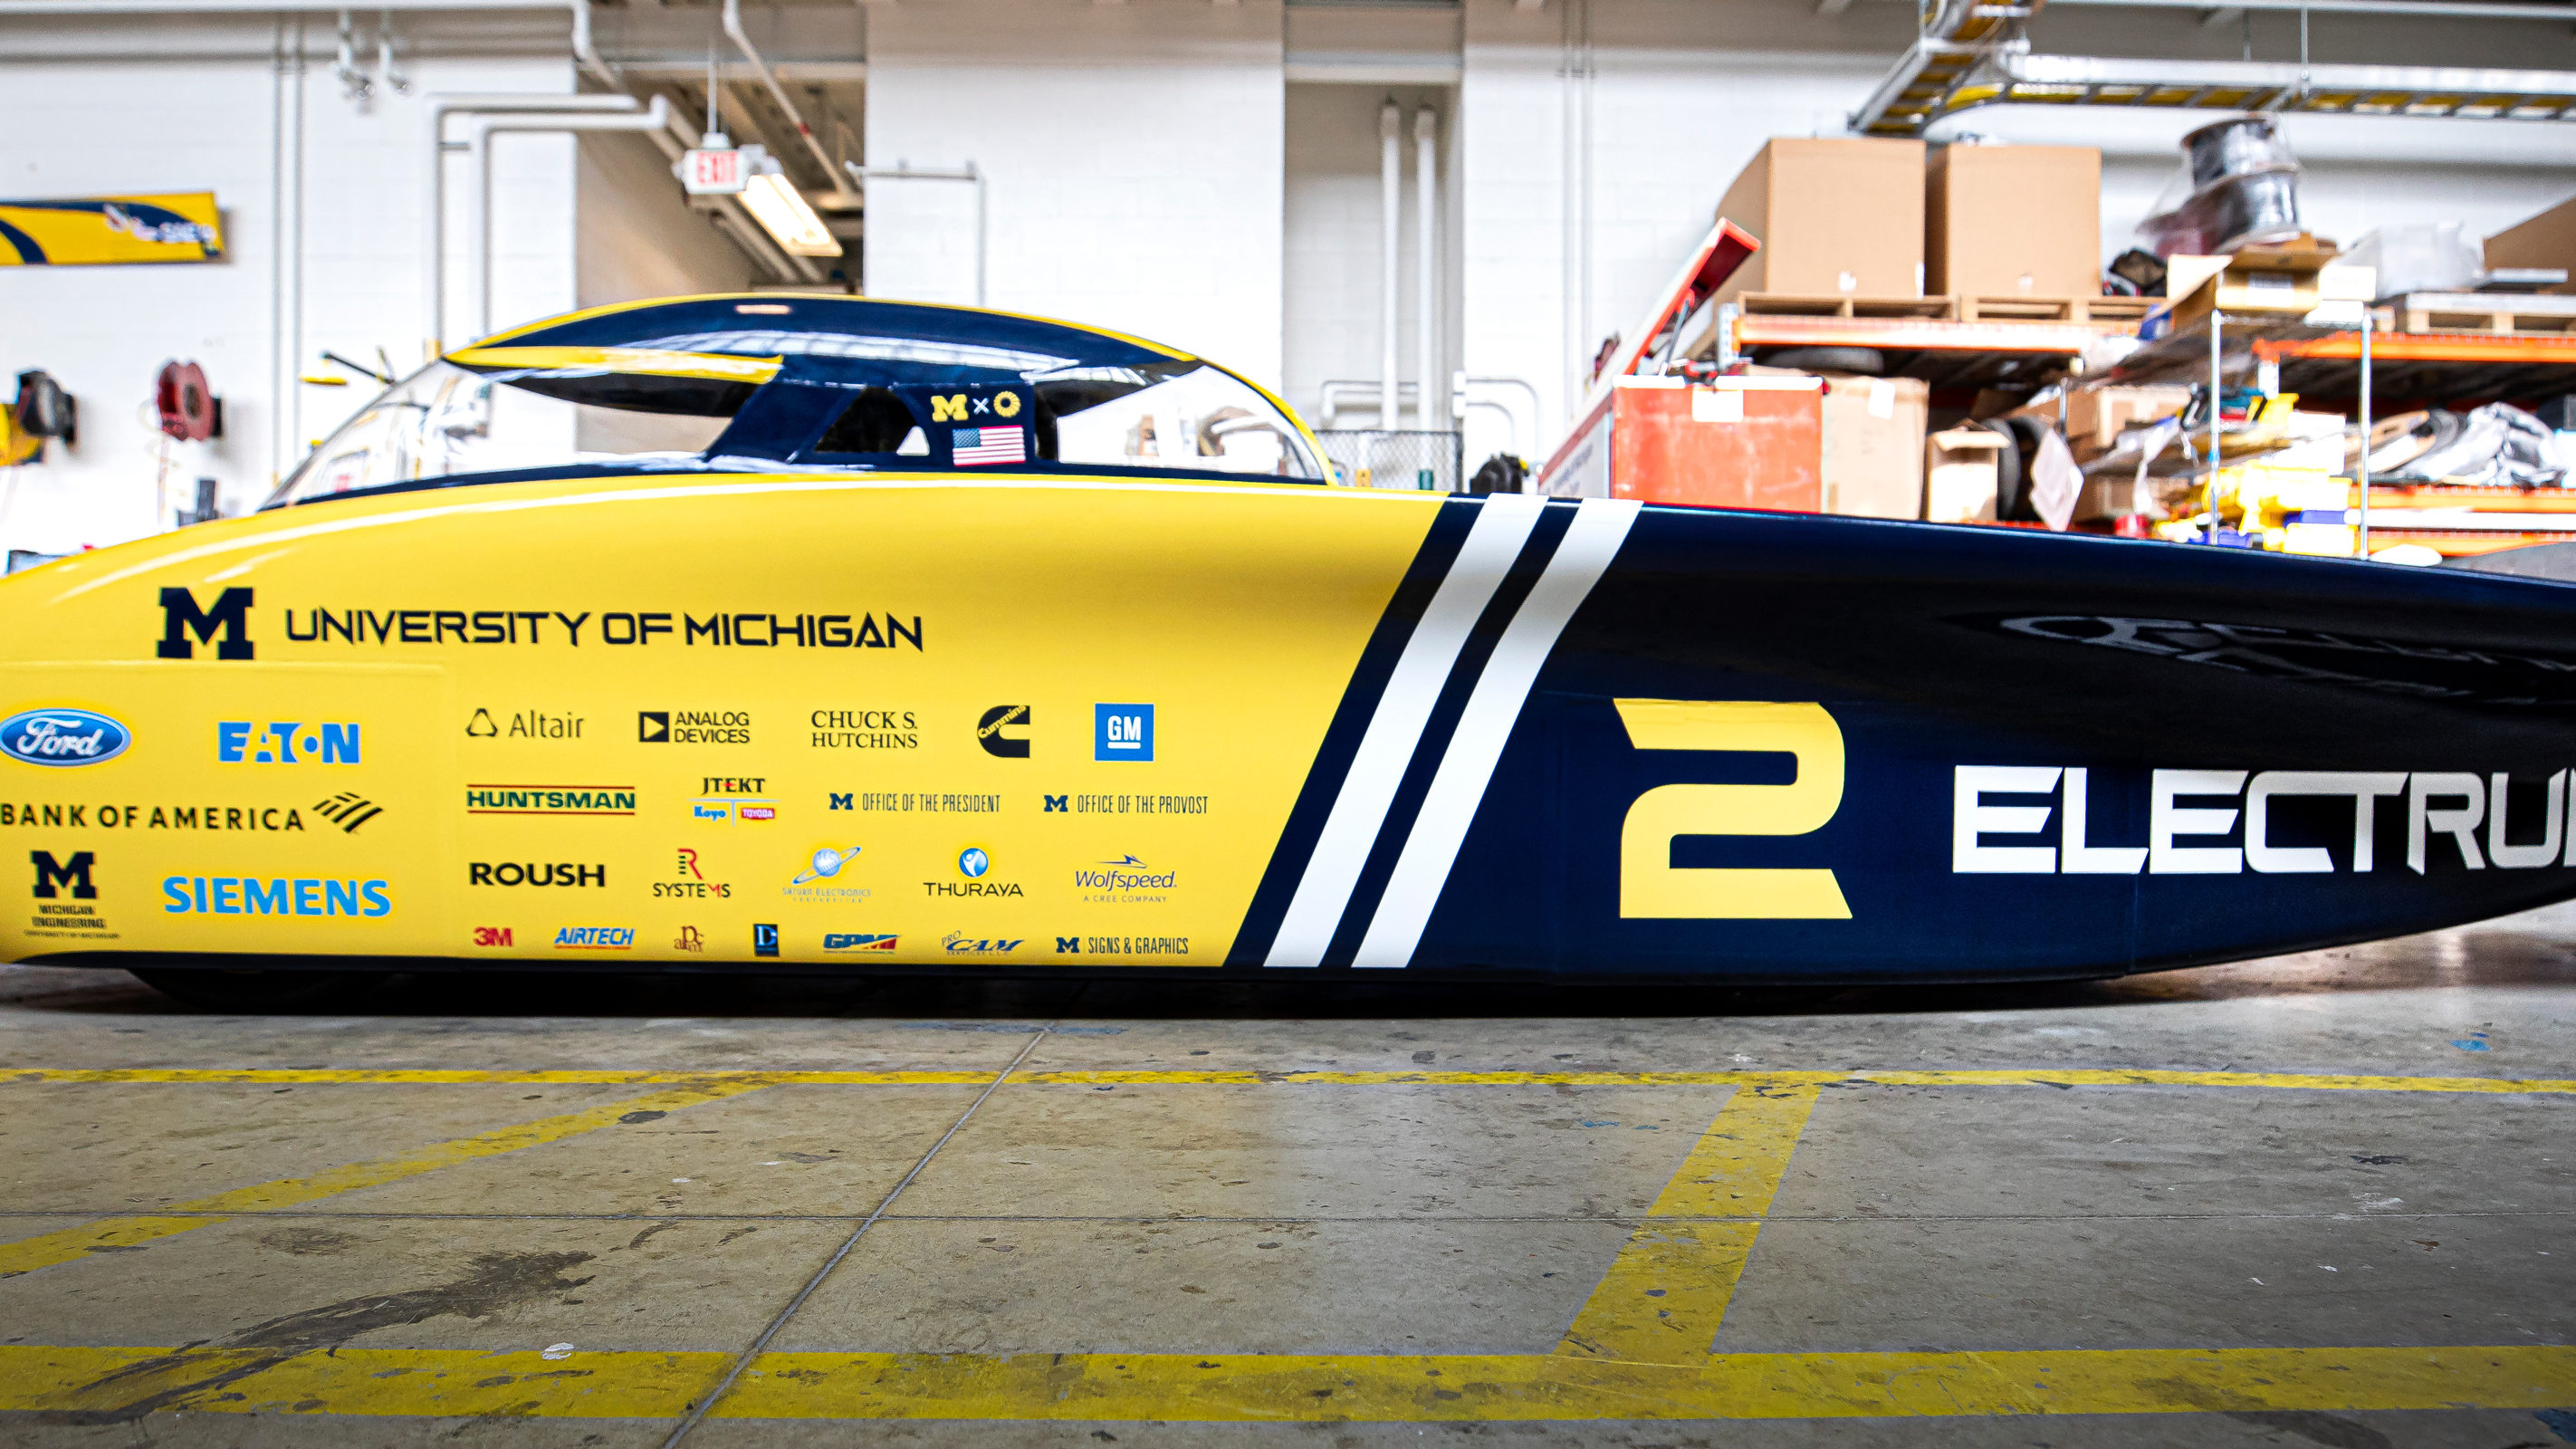 Electrum, the University of Michigan Solar Car Team's car that will be competing in the upcoming 2019 World Solar Challenge this fall. Photo: Joseph Xu/Michigan Engineering